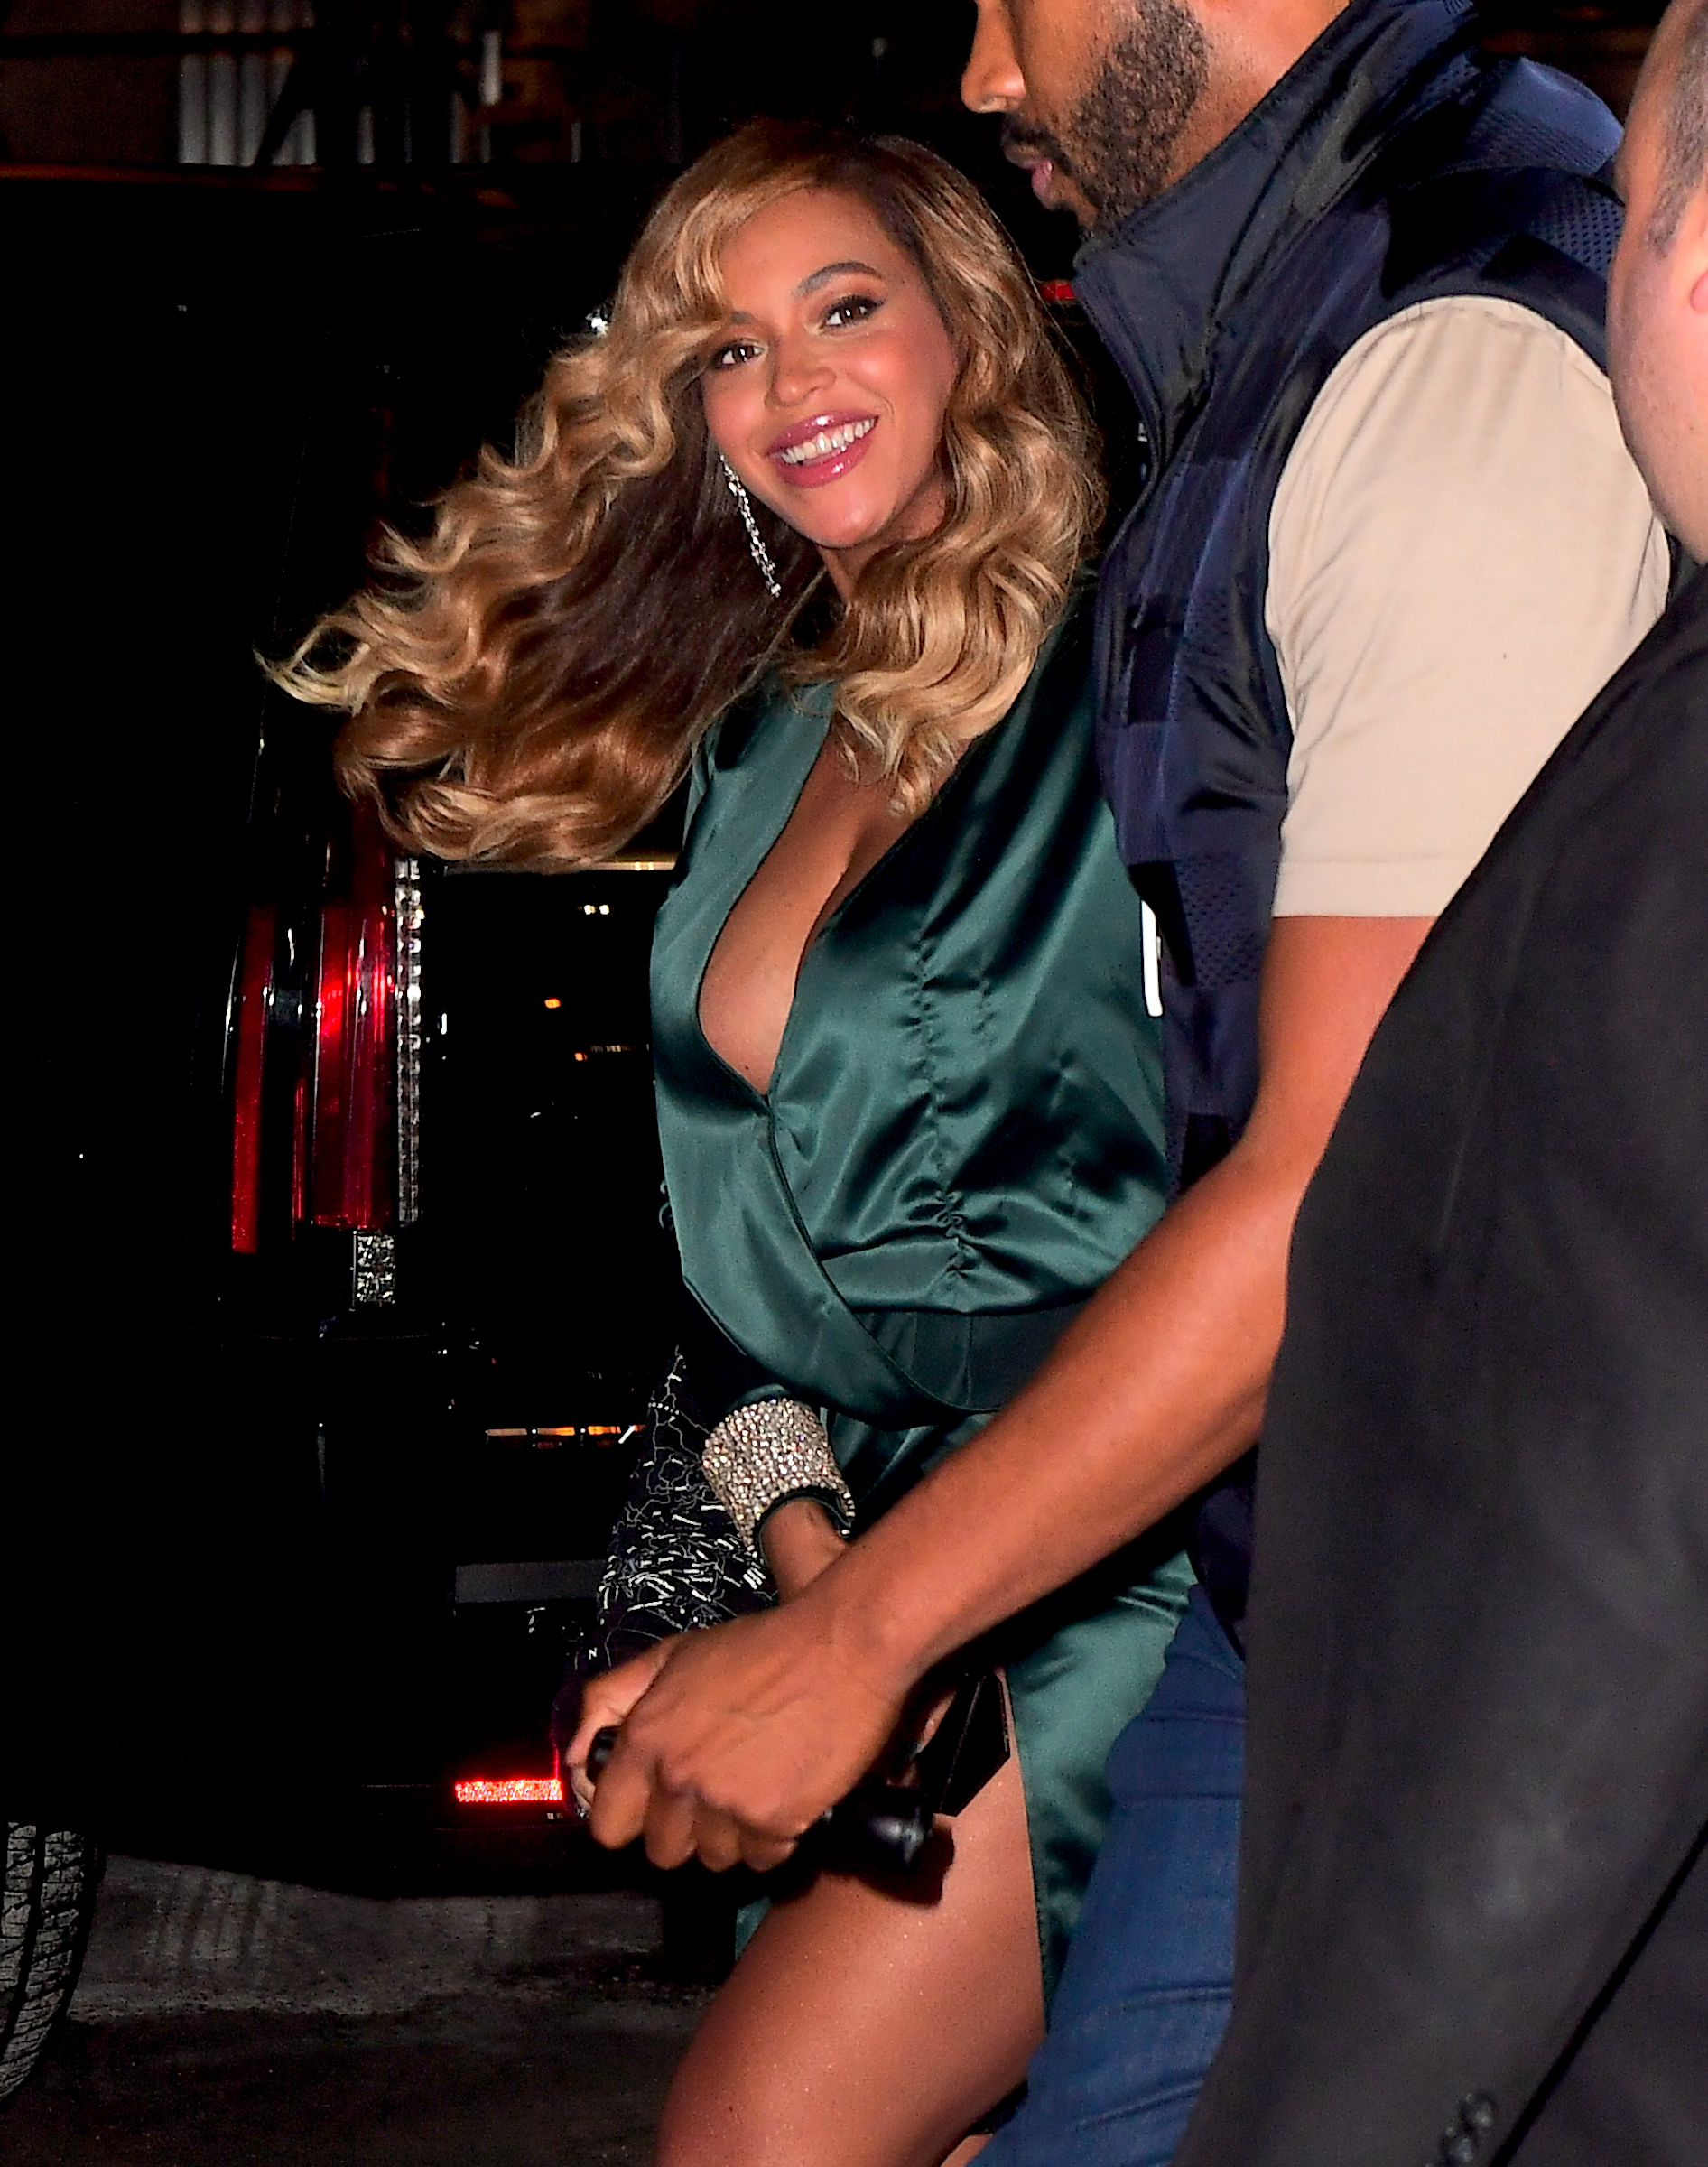 Beyonce was spotted making a stealthy entrance into Rihanna's Diamond Ball in NYC on Thursday. She ducked in the Freight Entrance after Midnight, 4 Hours after the event began. This is her first Public Event since giving birth to her Twins. She looked stunning in an Emerald Dress and a Big Smile. She showed off lots of skin in the low cut dress, while flashing her black Spanks underneath her leggy silk dress. <P> Pictured: Beyonce <B>Ref: SPL1578521  150917  </B><BR/> Picture by: 247PAPS.TV / Splash News<BR/> </P><P> <B>Splash News and Pictures</B><BR/> Los Angeles:310-821-2666<BR/> New York:212-619-2666<BR/> London:870-934-2666<BR/> <span id=